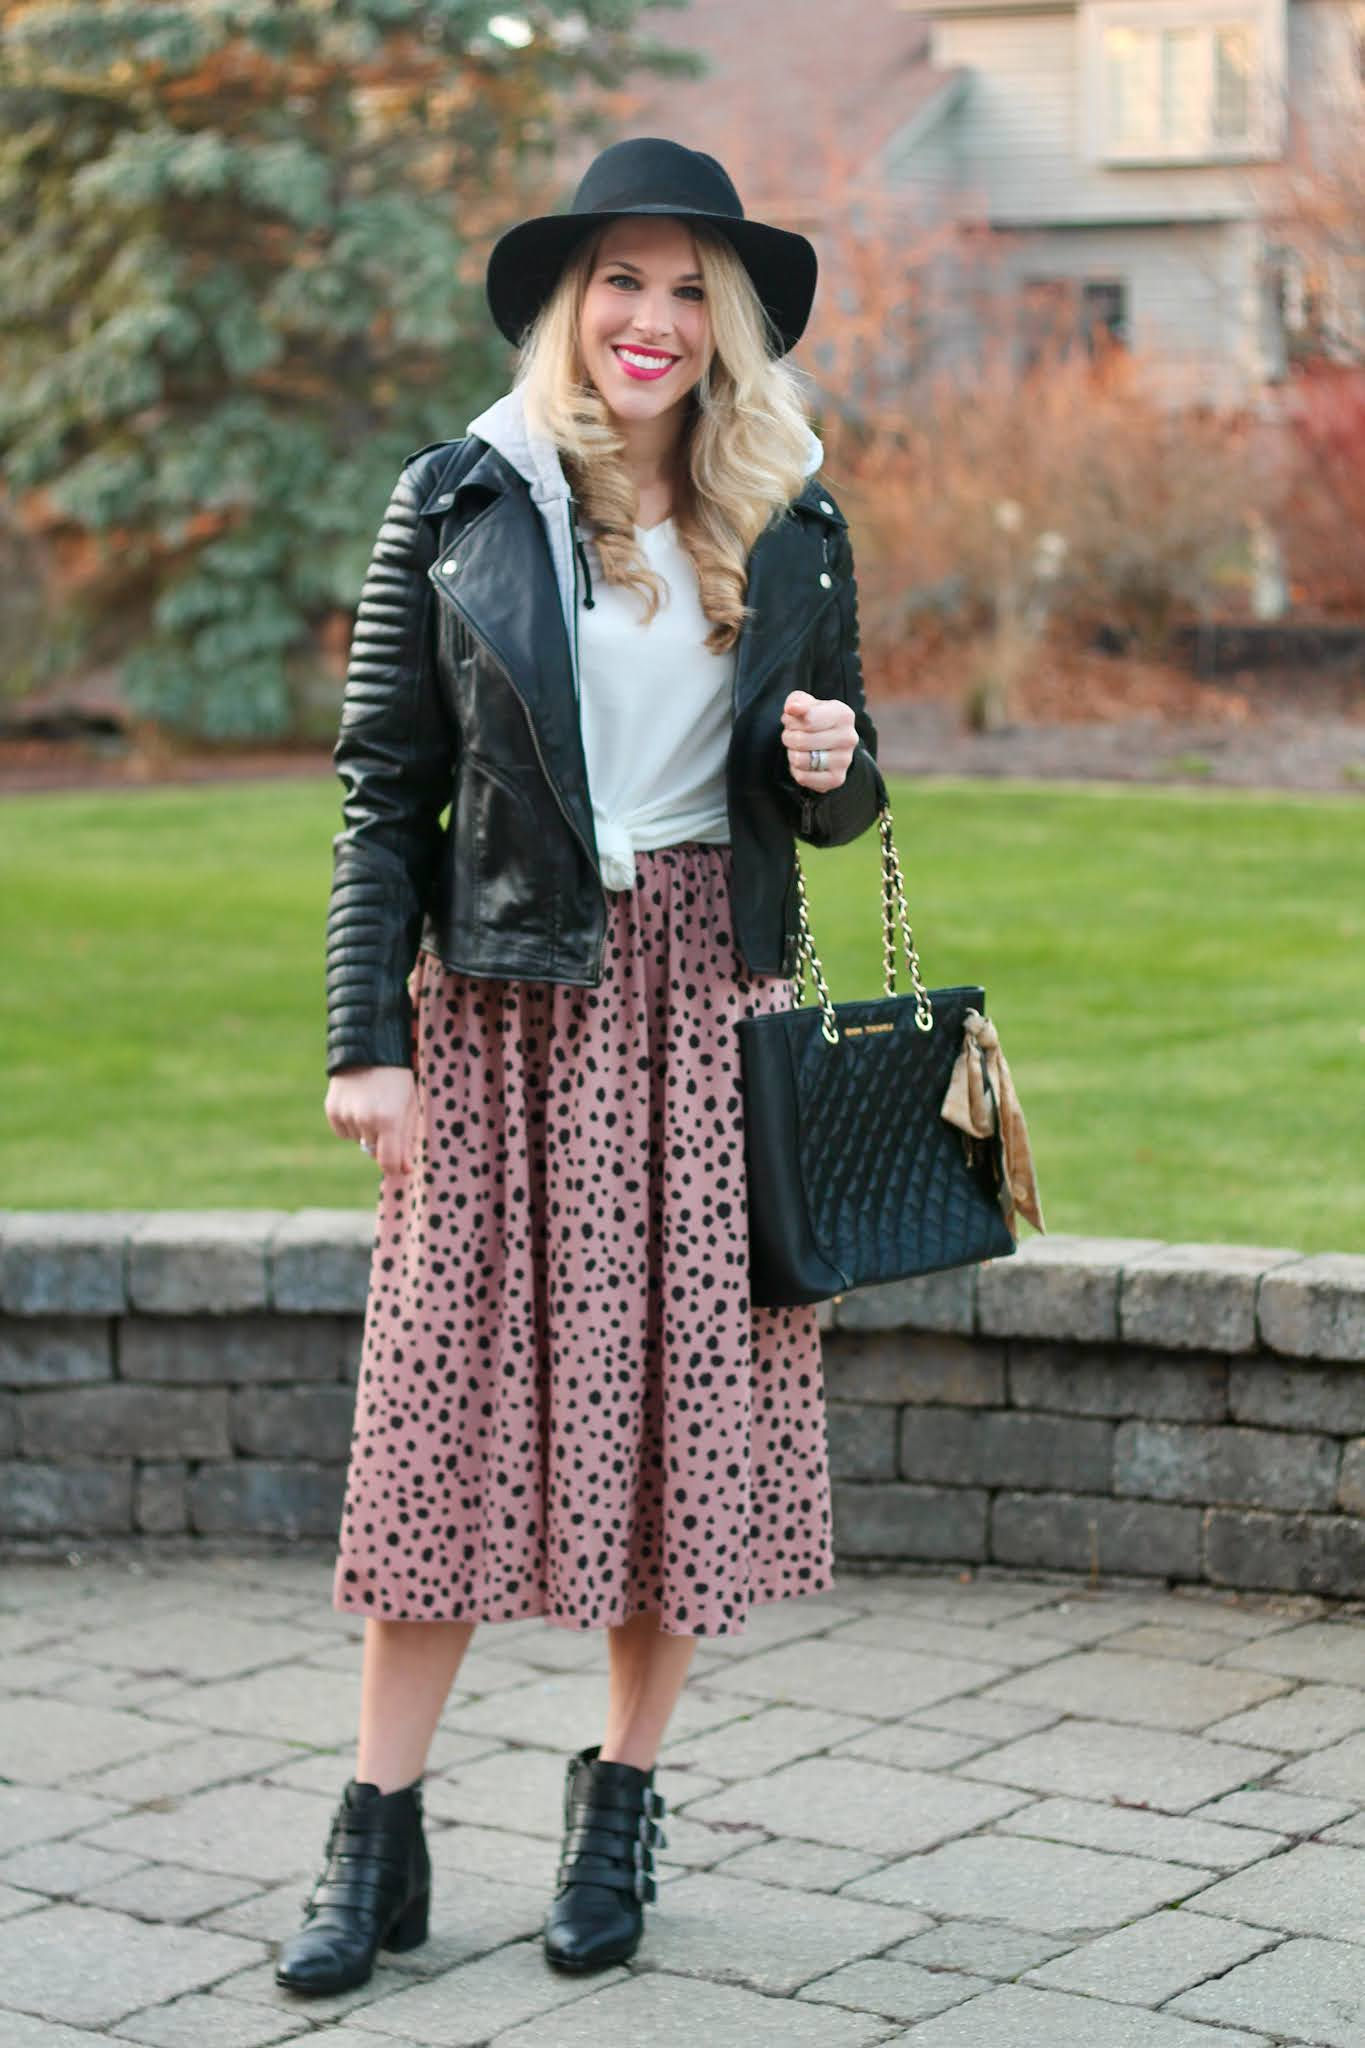 black hooded moto jacket, leopard midi skirt, black quilted tote, black buckle booties, black fedora, casual winter skirt outfit